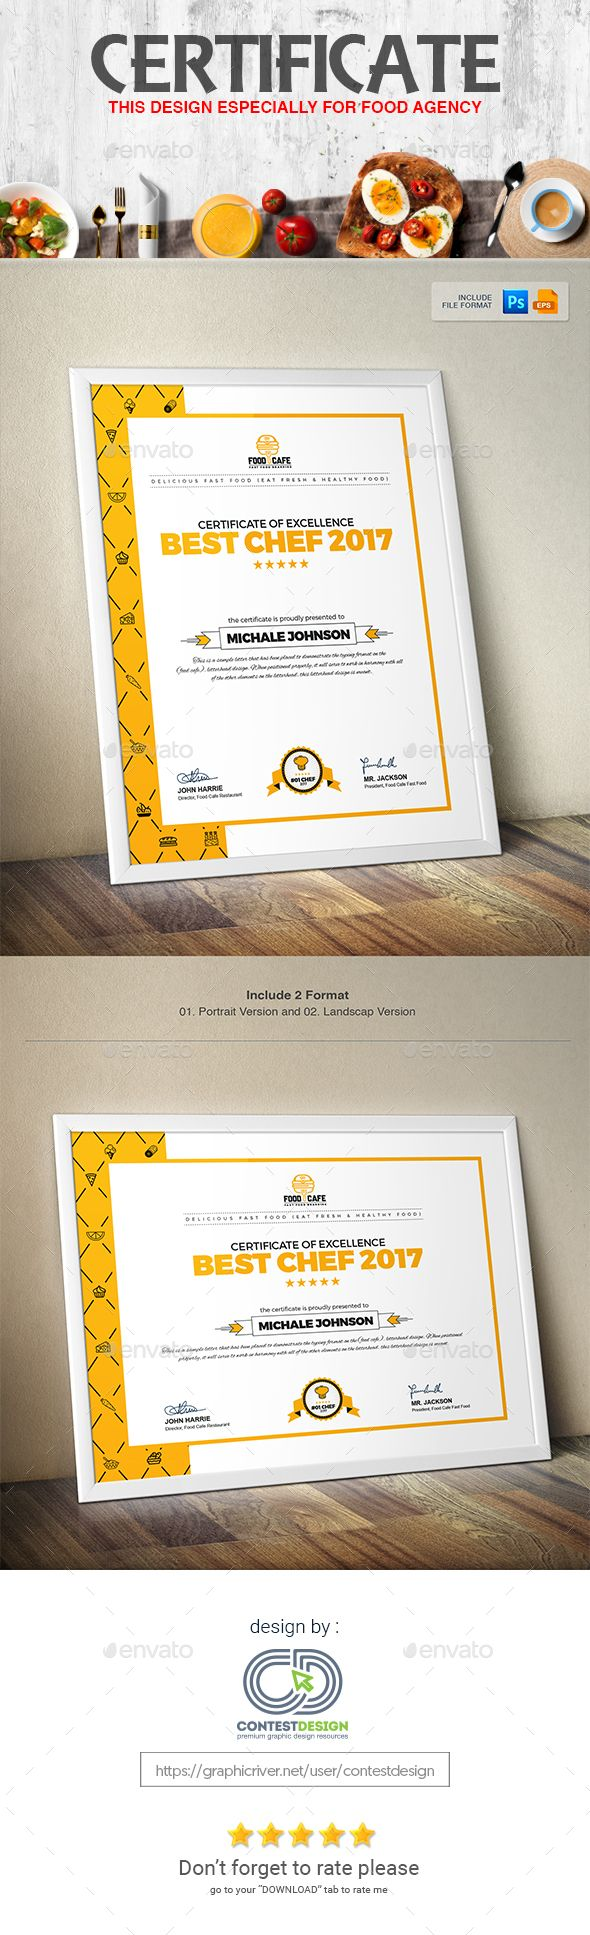 Certificate Design Template PSD, Vector EPS, AI Illustrator